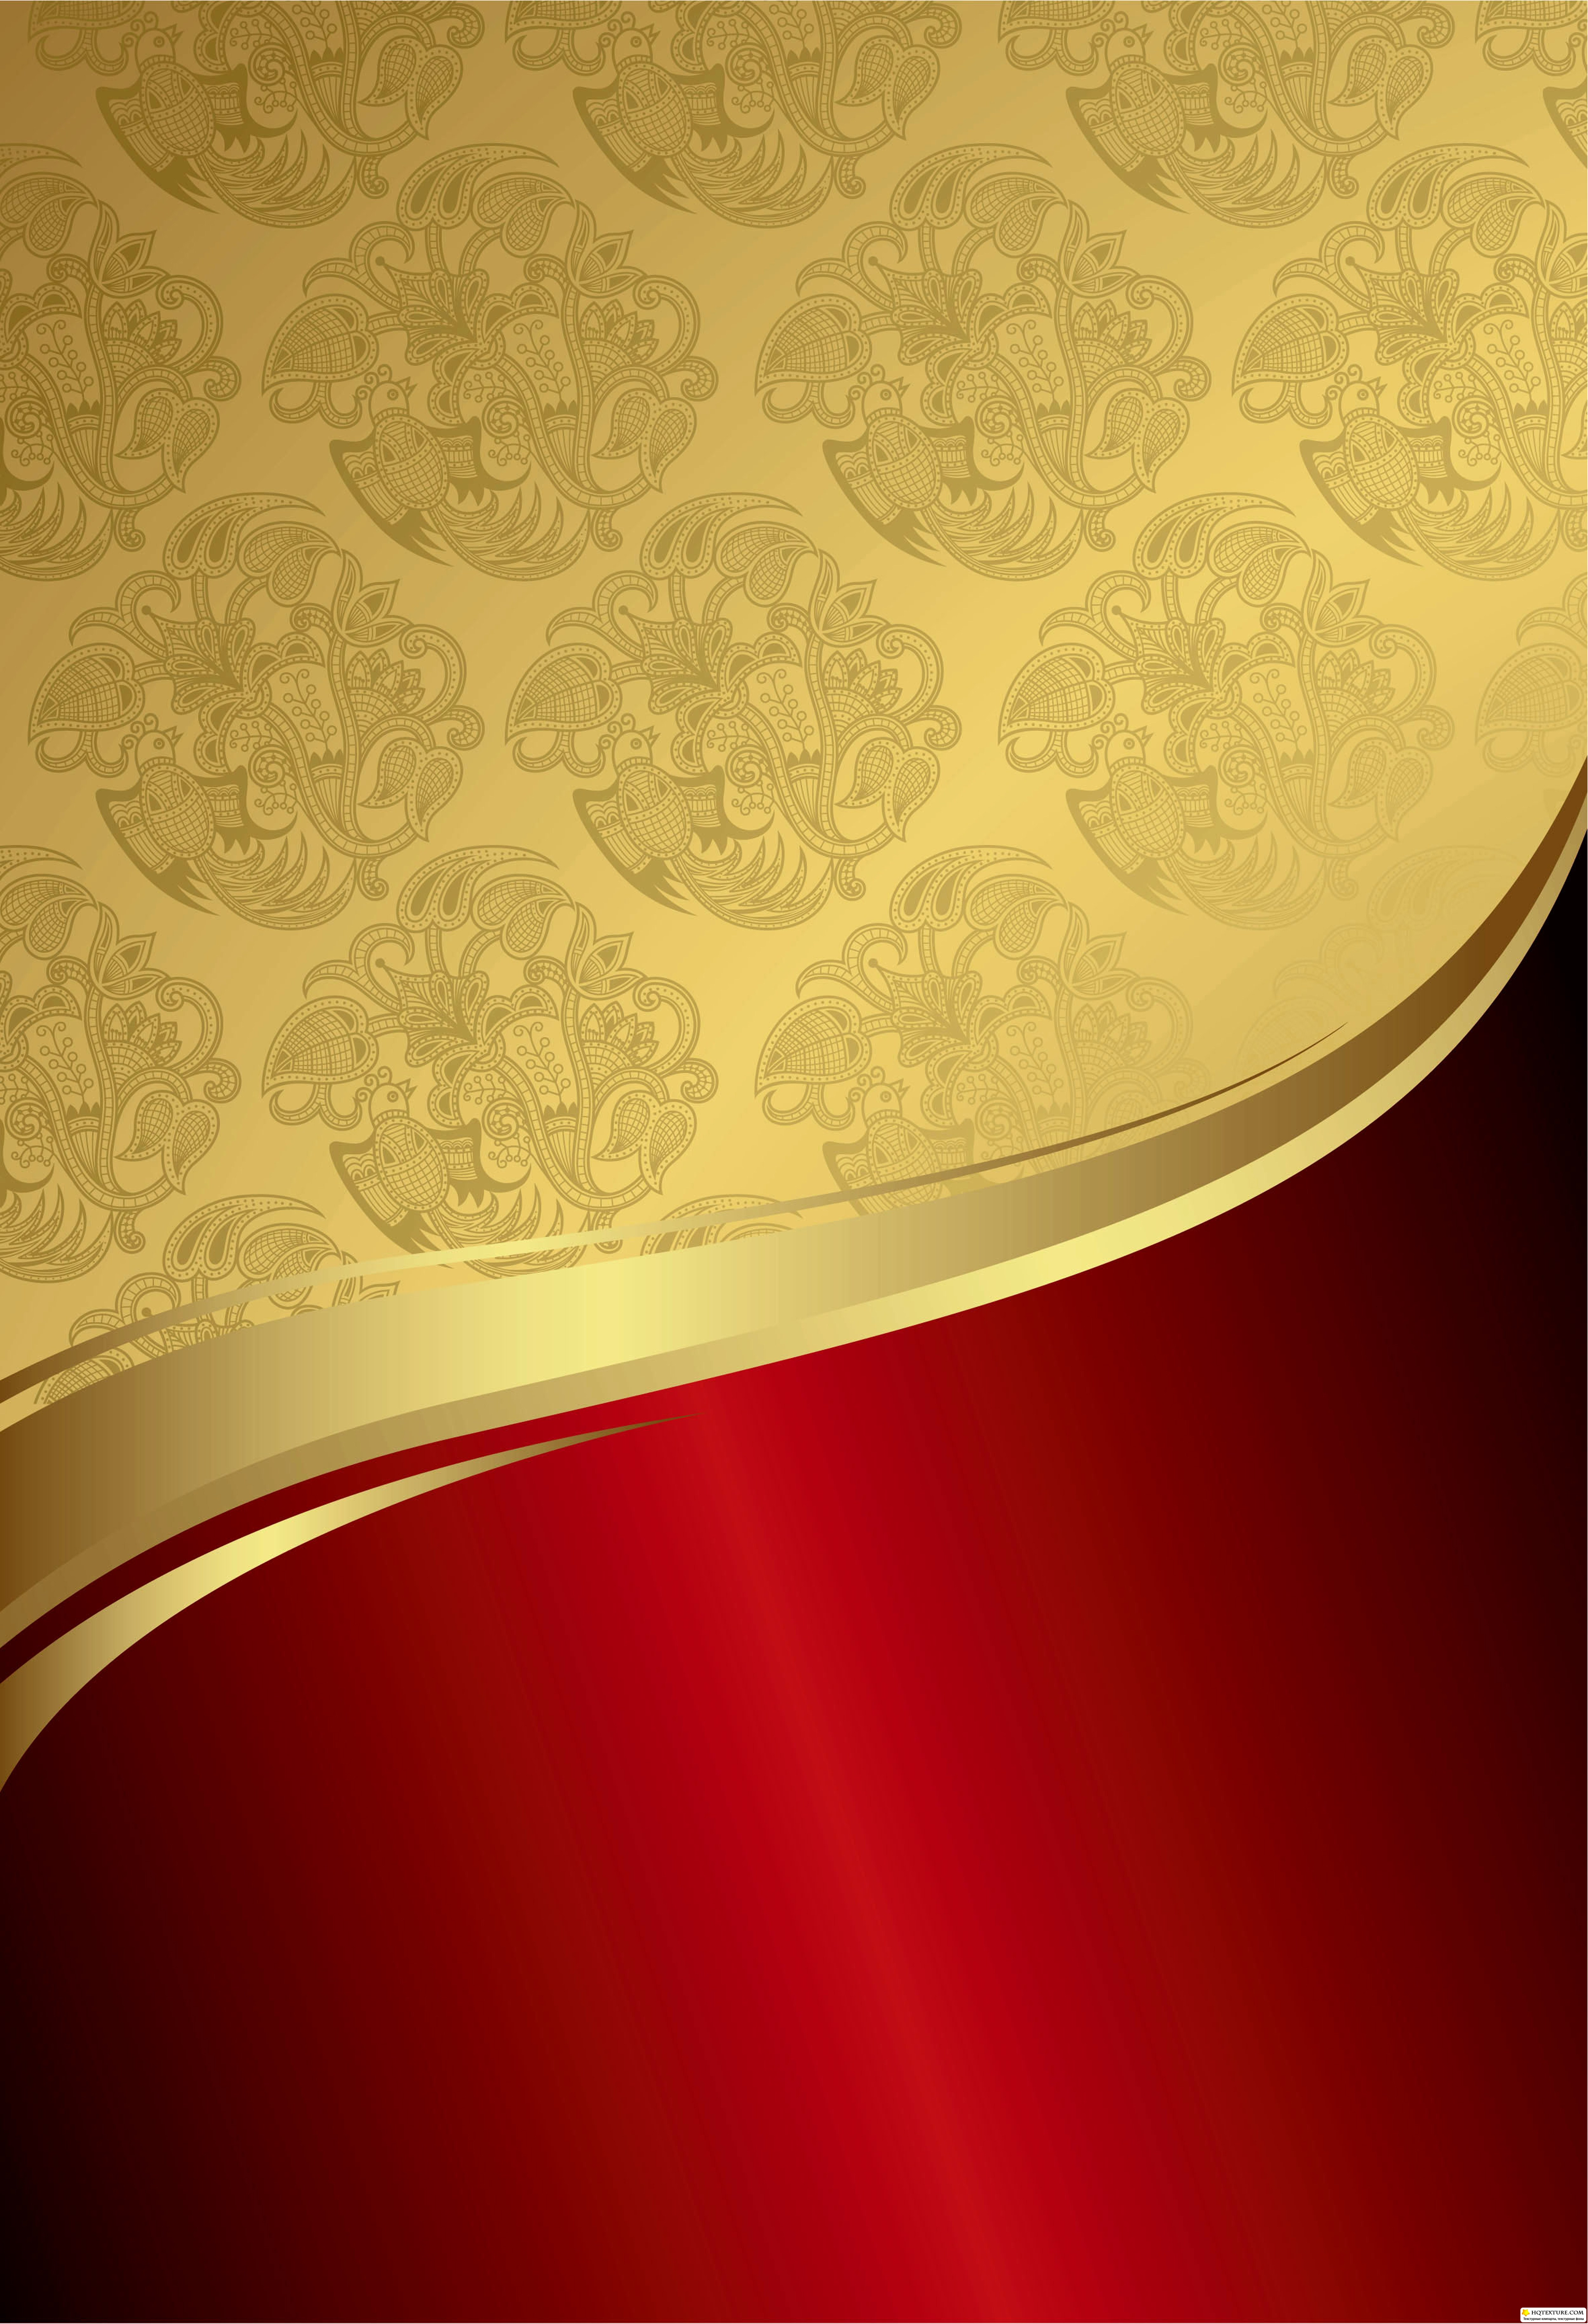 Red And Gold Wallpaper